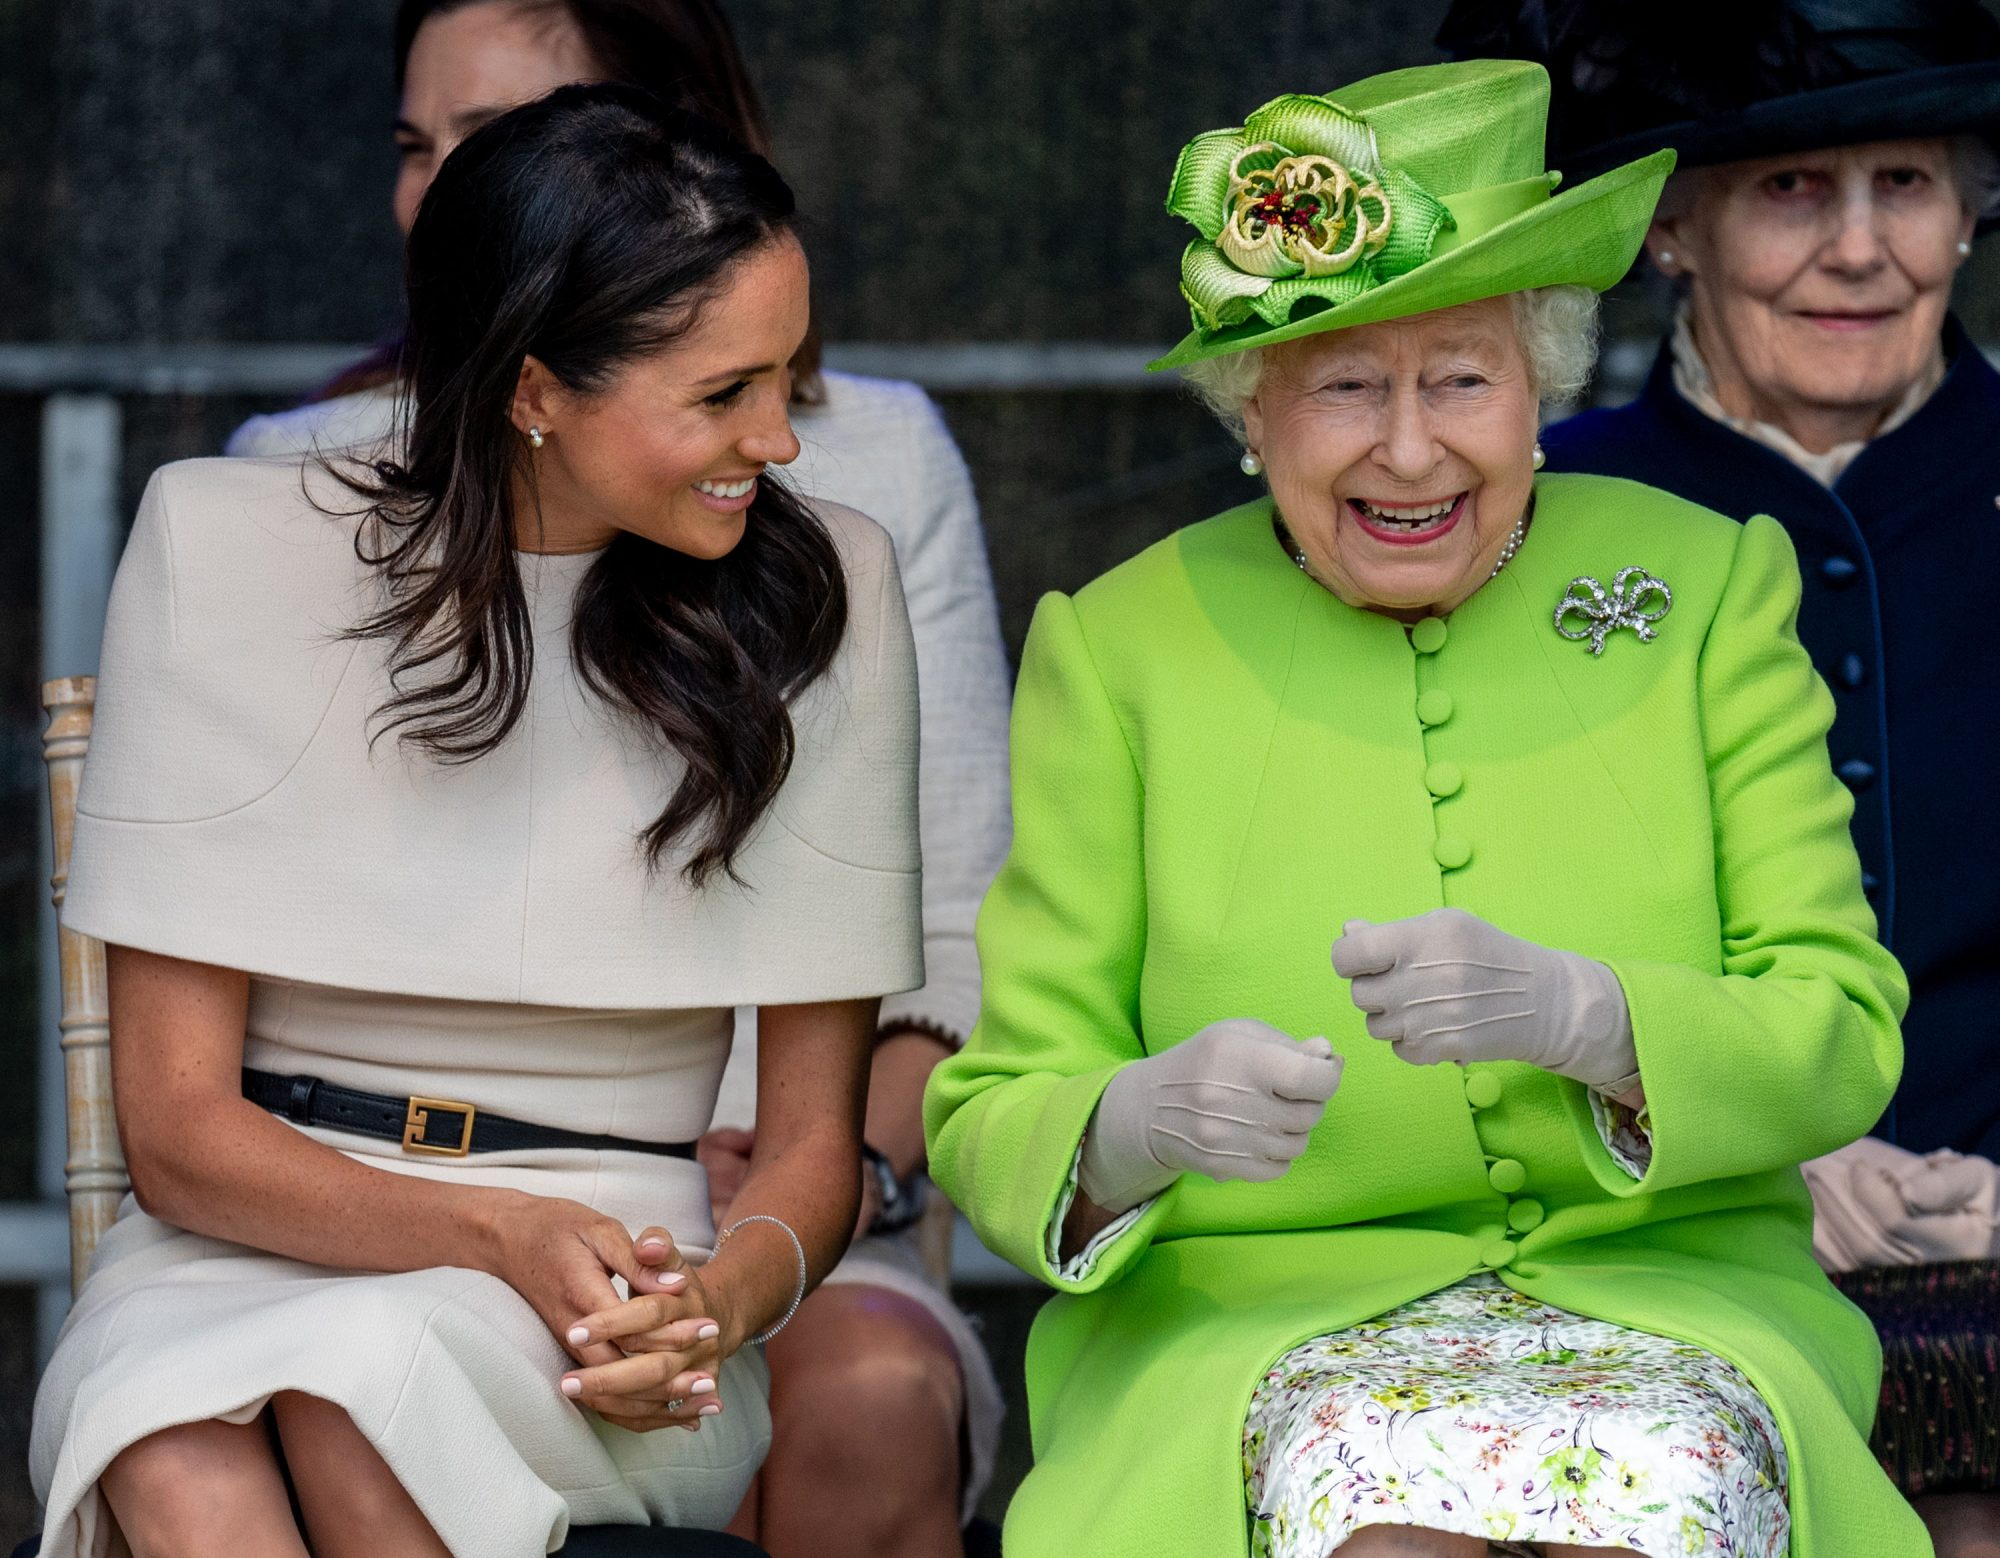 Meghan-and-queen-chatting.jpg